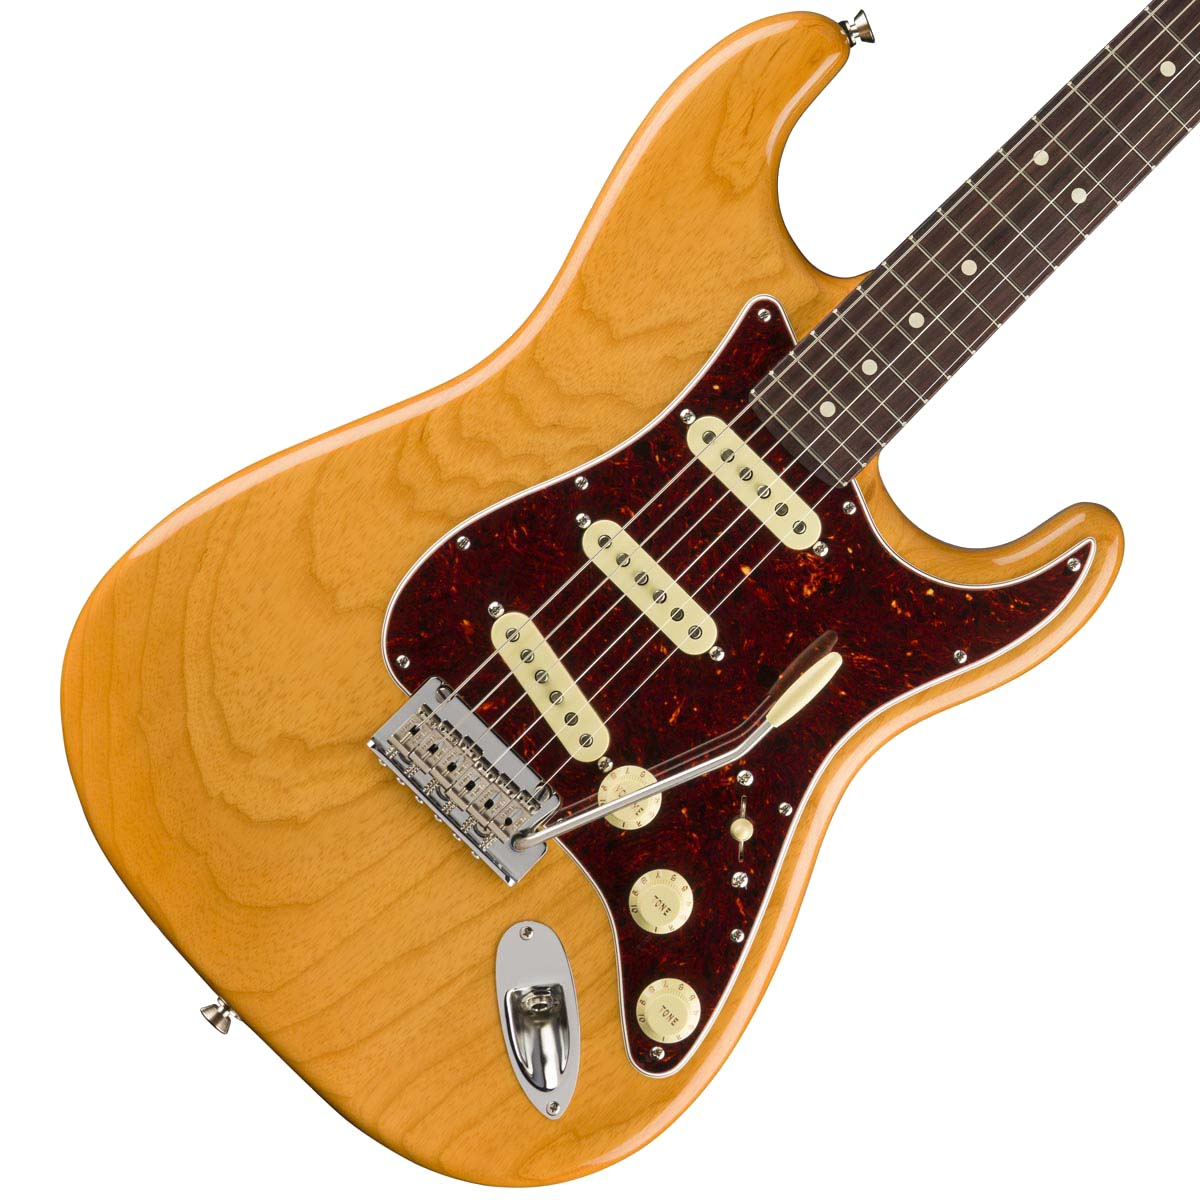 Fender USA / Limited Edition Lightweight Ash American Professional Stratocaster Aged Natural Rosewood フェンダー